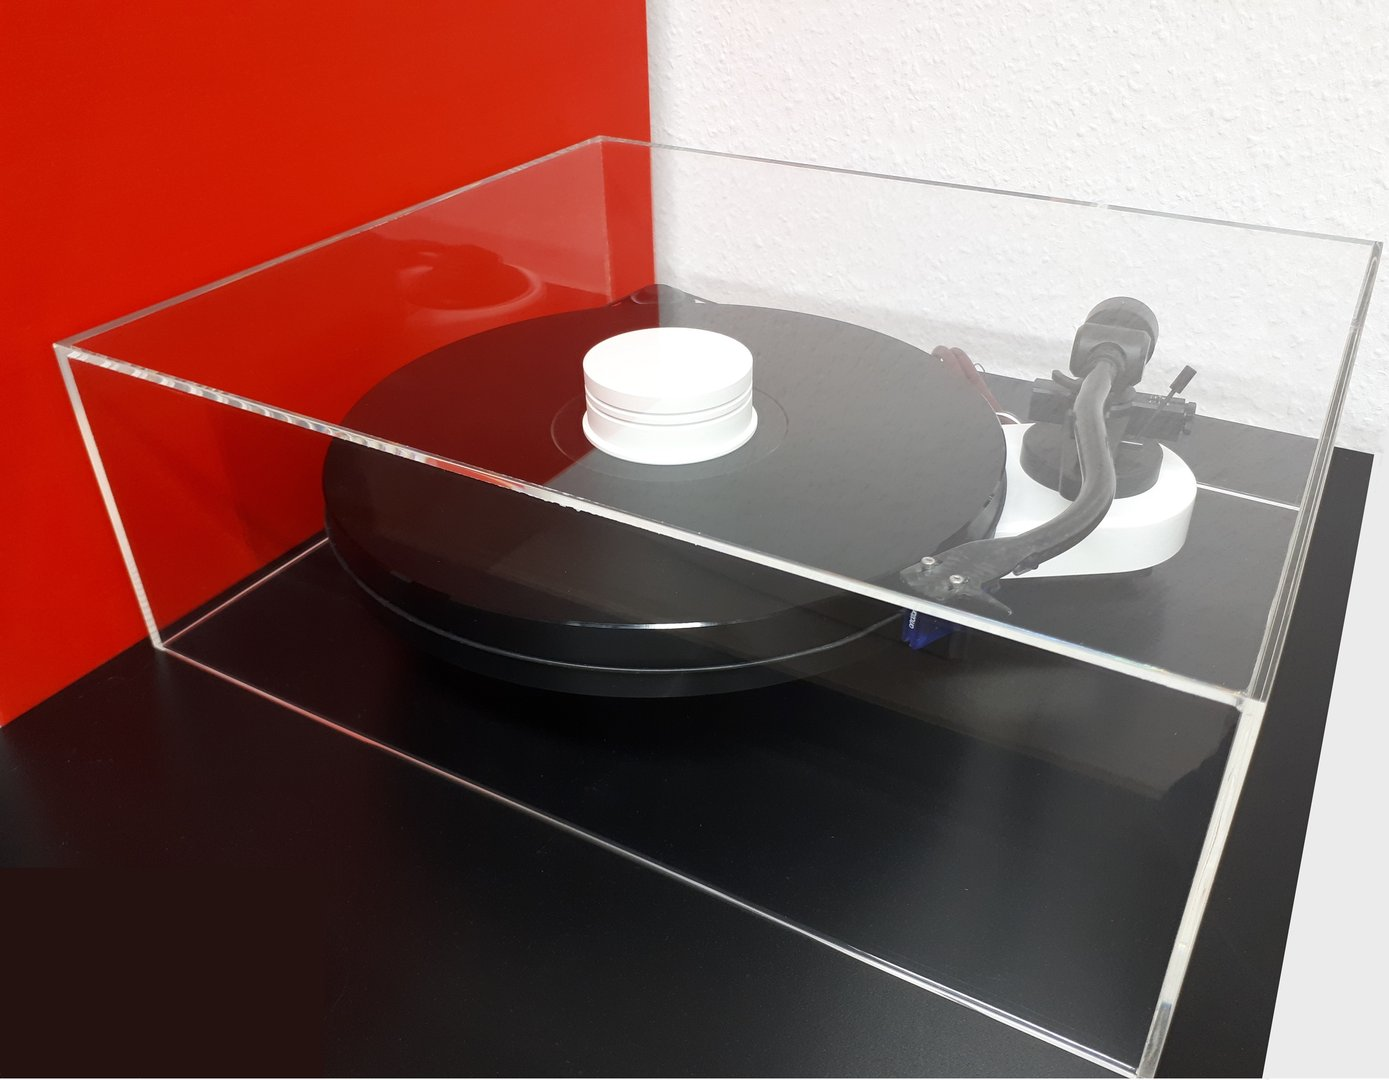 ACRYLIC COVER for turntable Pro-Ject RPM 1 Carbon | RPM 1.3 Genie